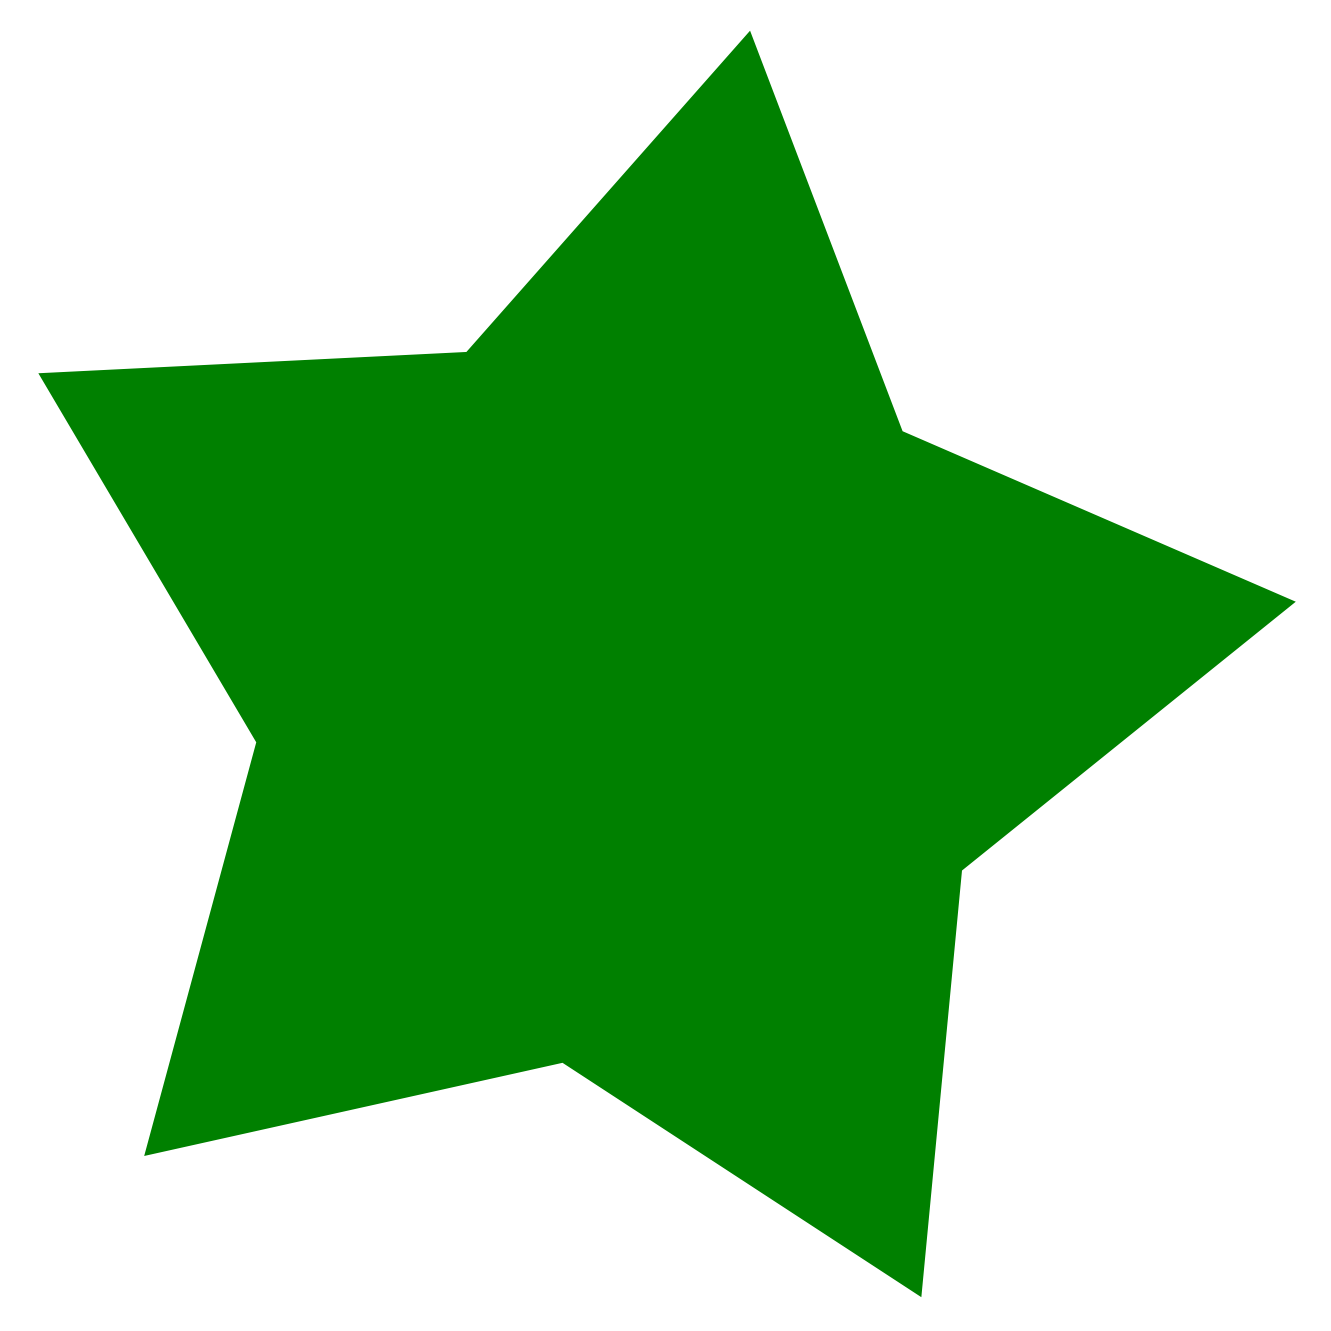 Green star clipart clipart images gallery for free download.